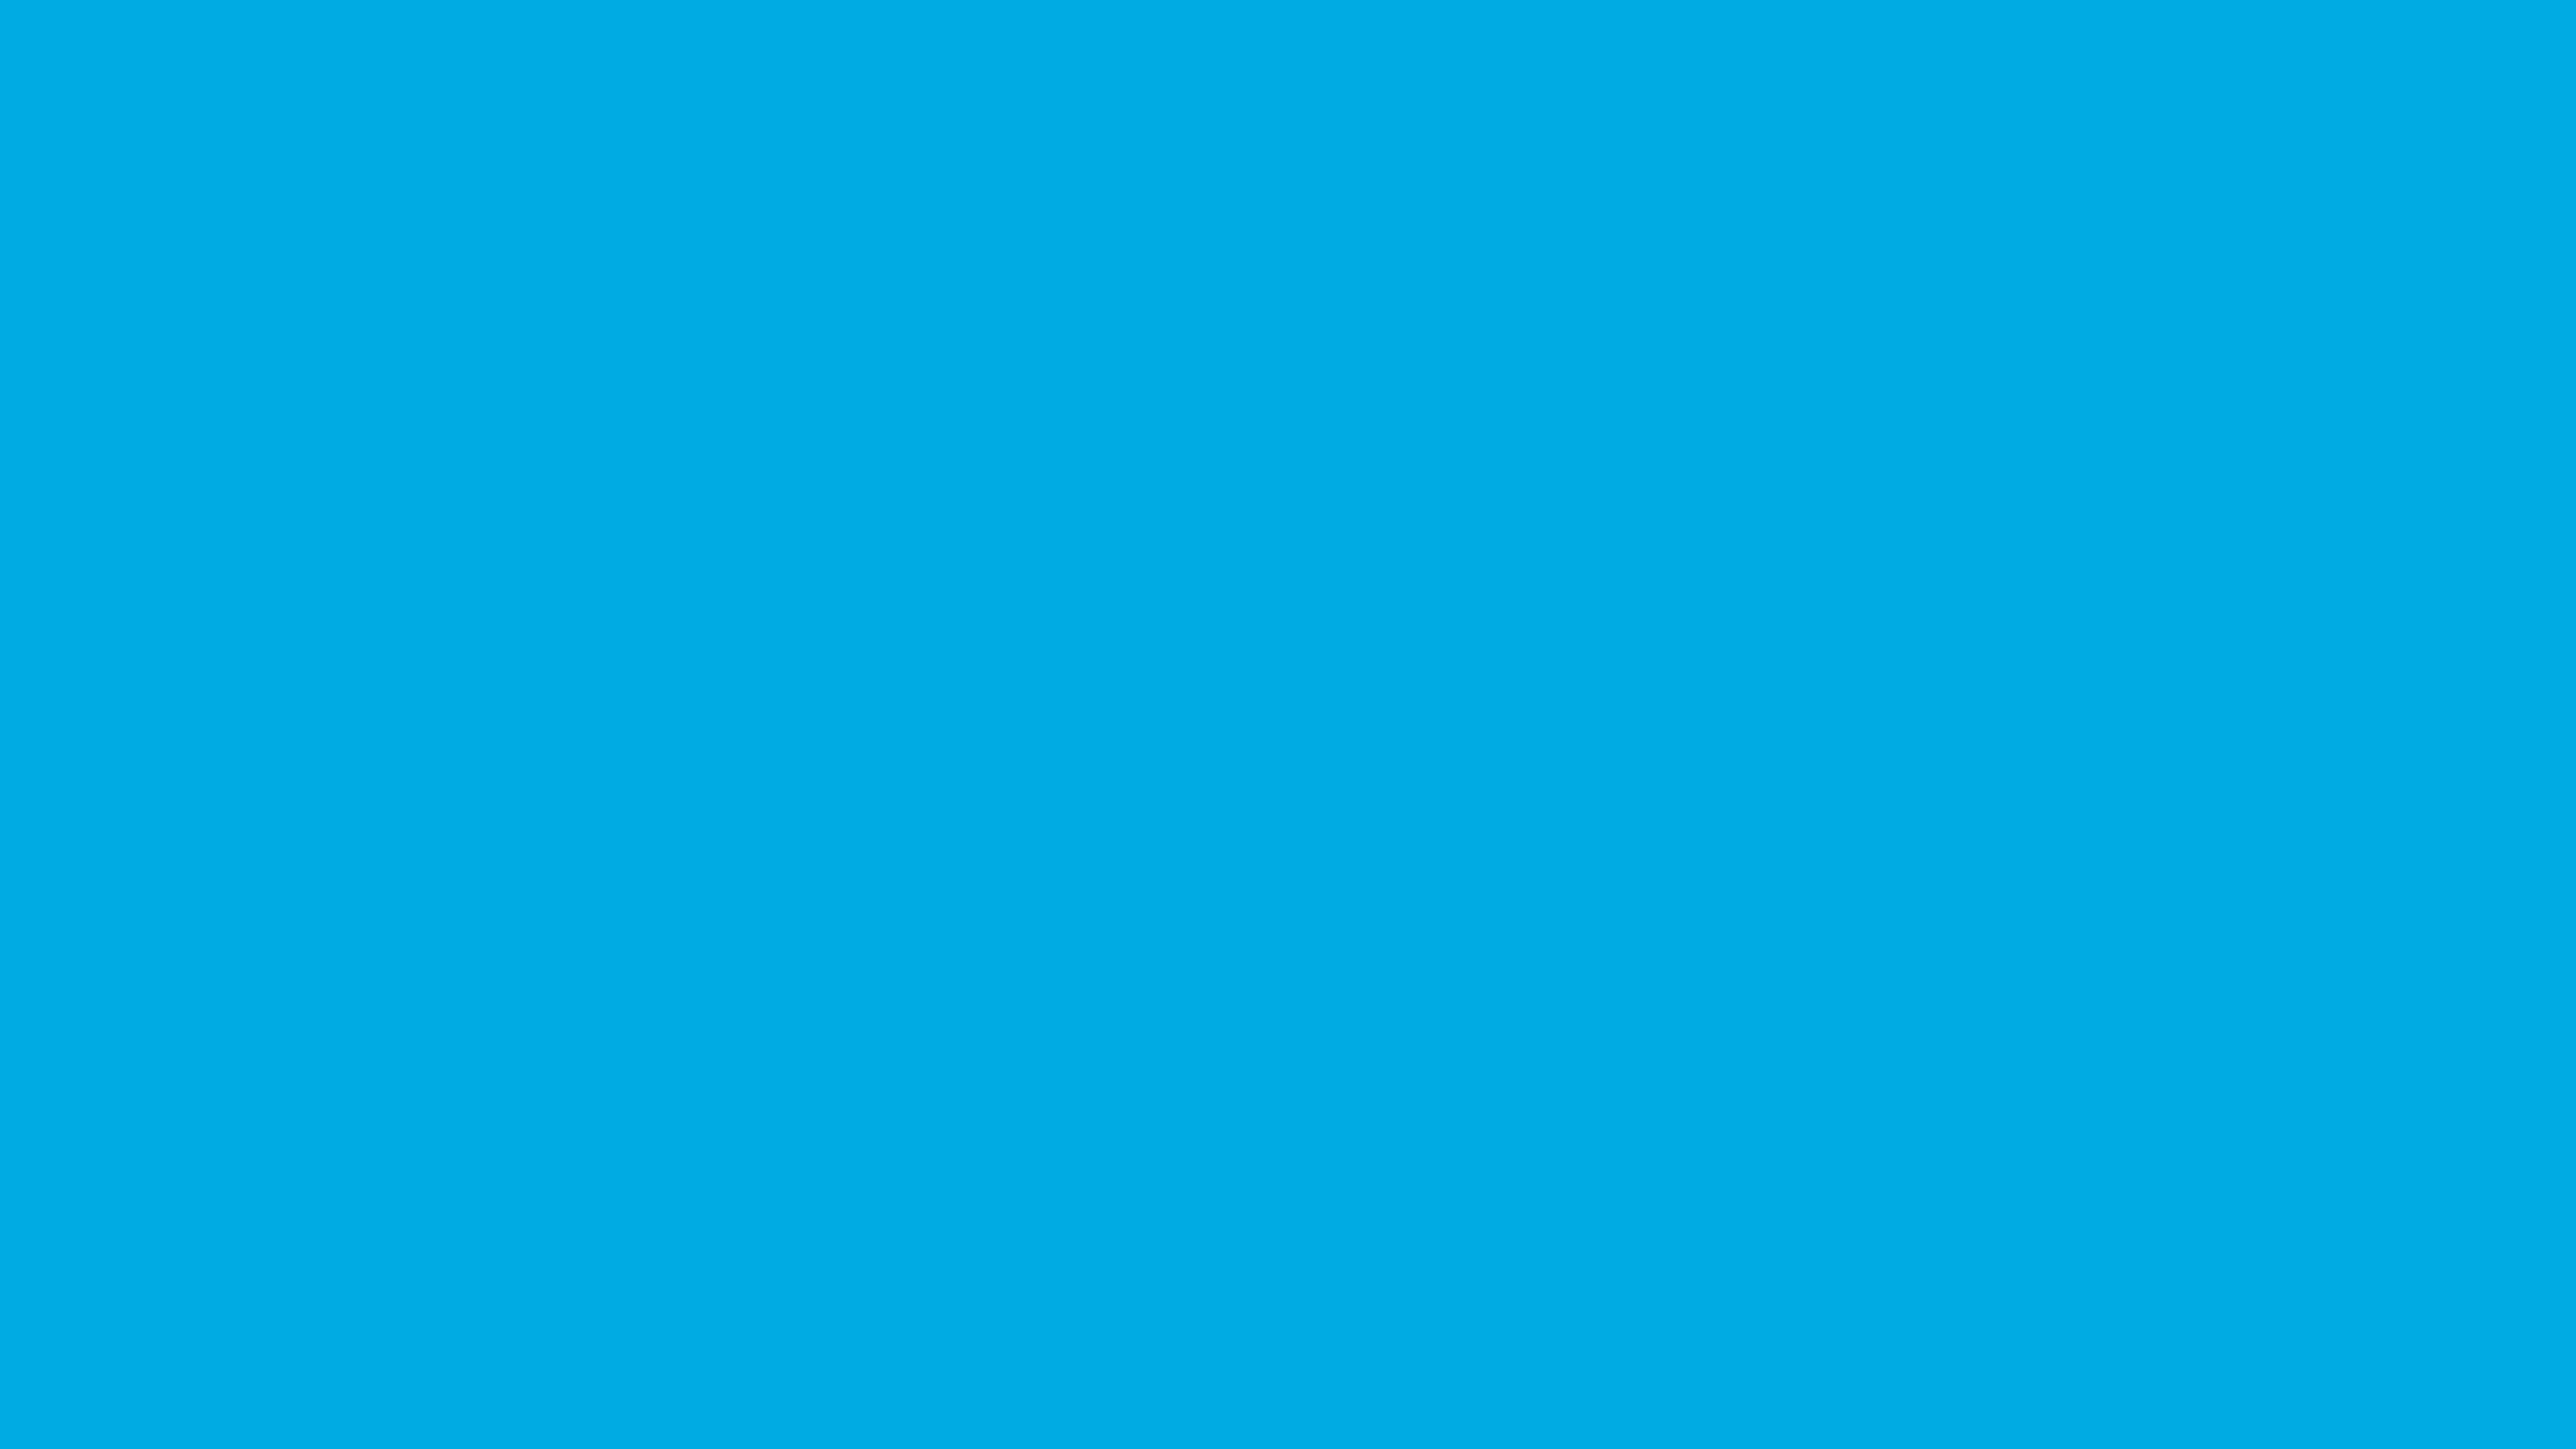 5120x2880 Spanish Sky Blue Solid Color Background